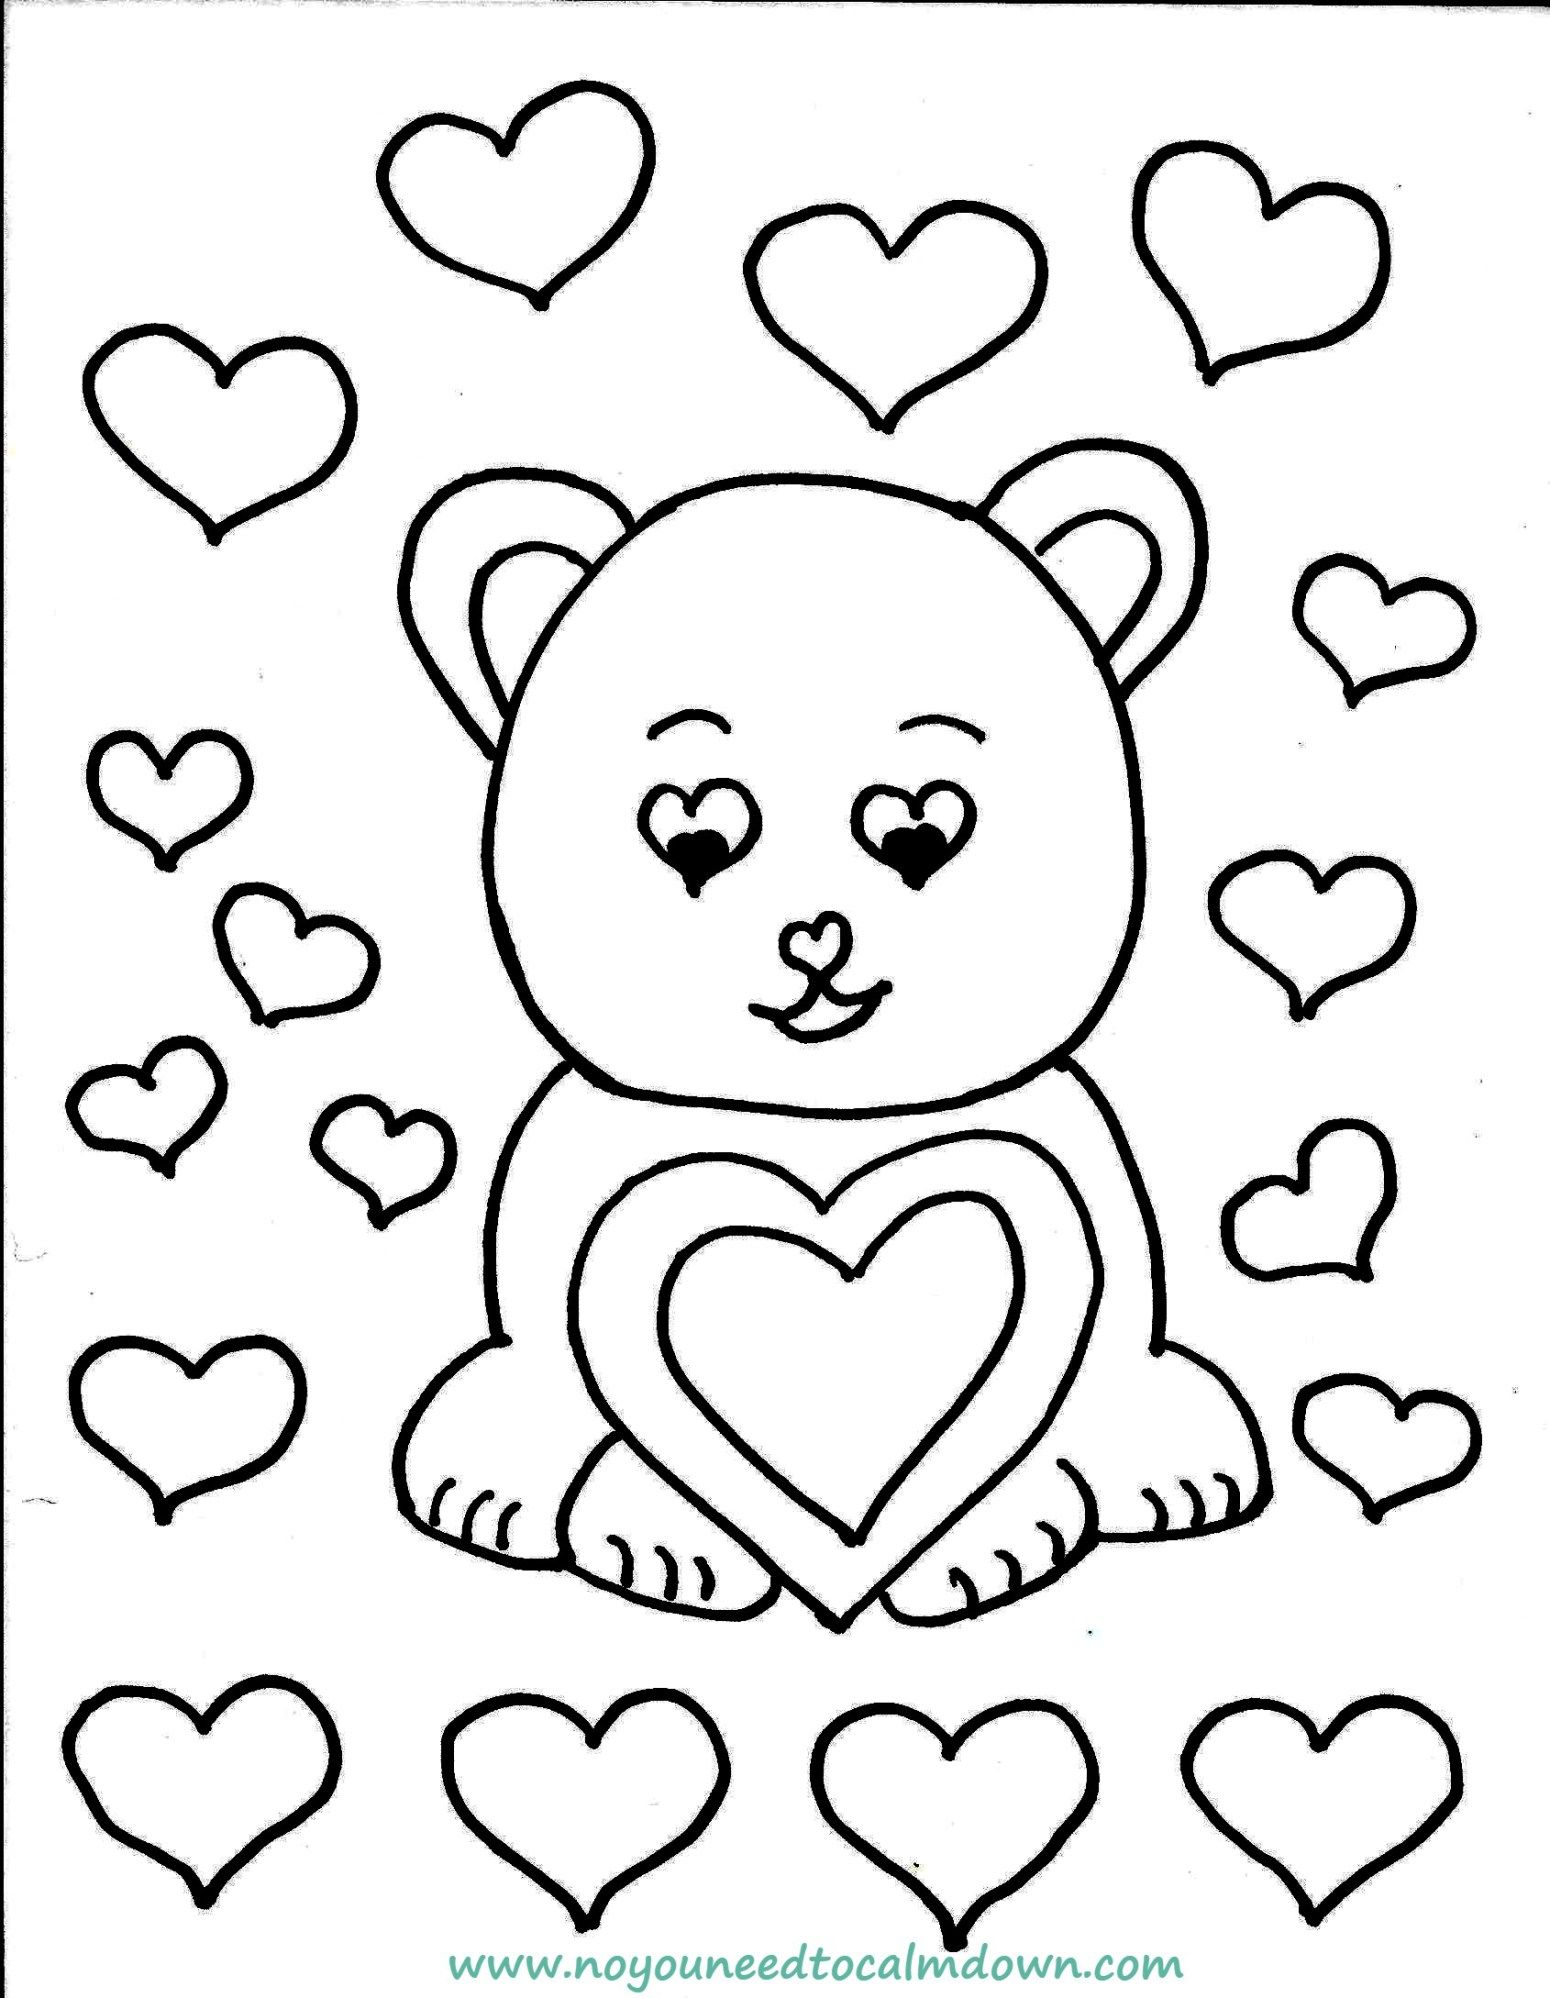 Cute Bear Valentine's Day Coloring Page Free Printable